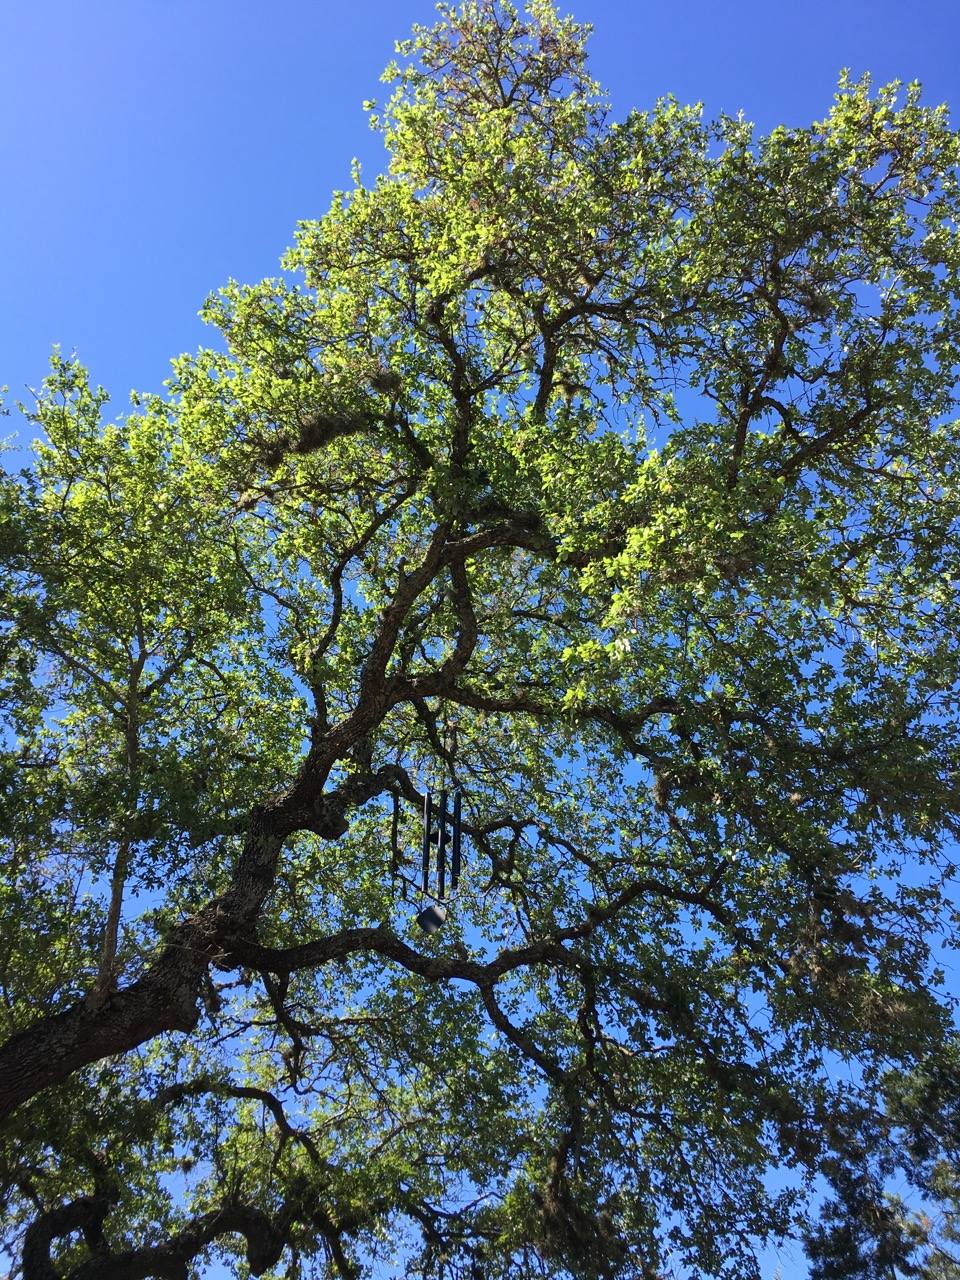 Wind Climes In Old Twisting Trees Draw Your Attention Up To The Sky